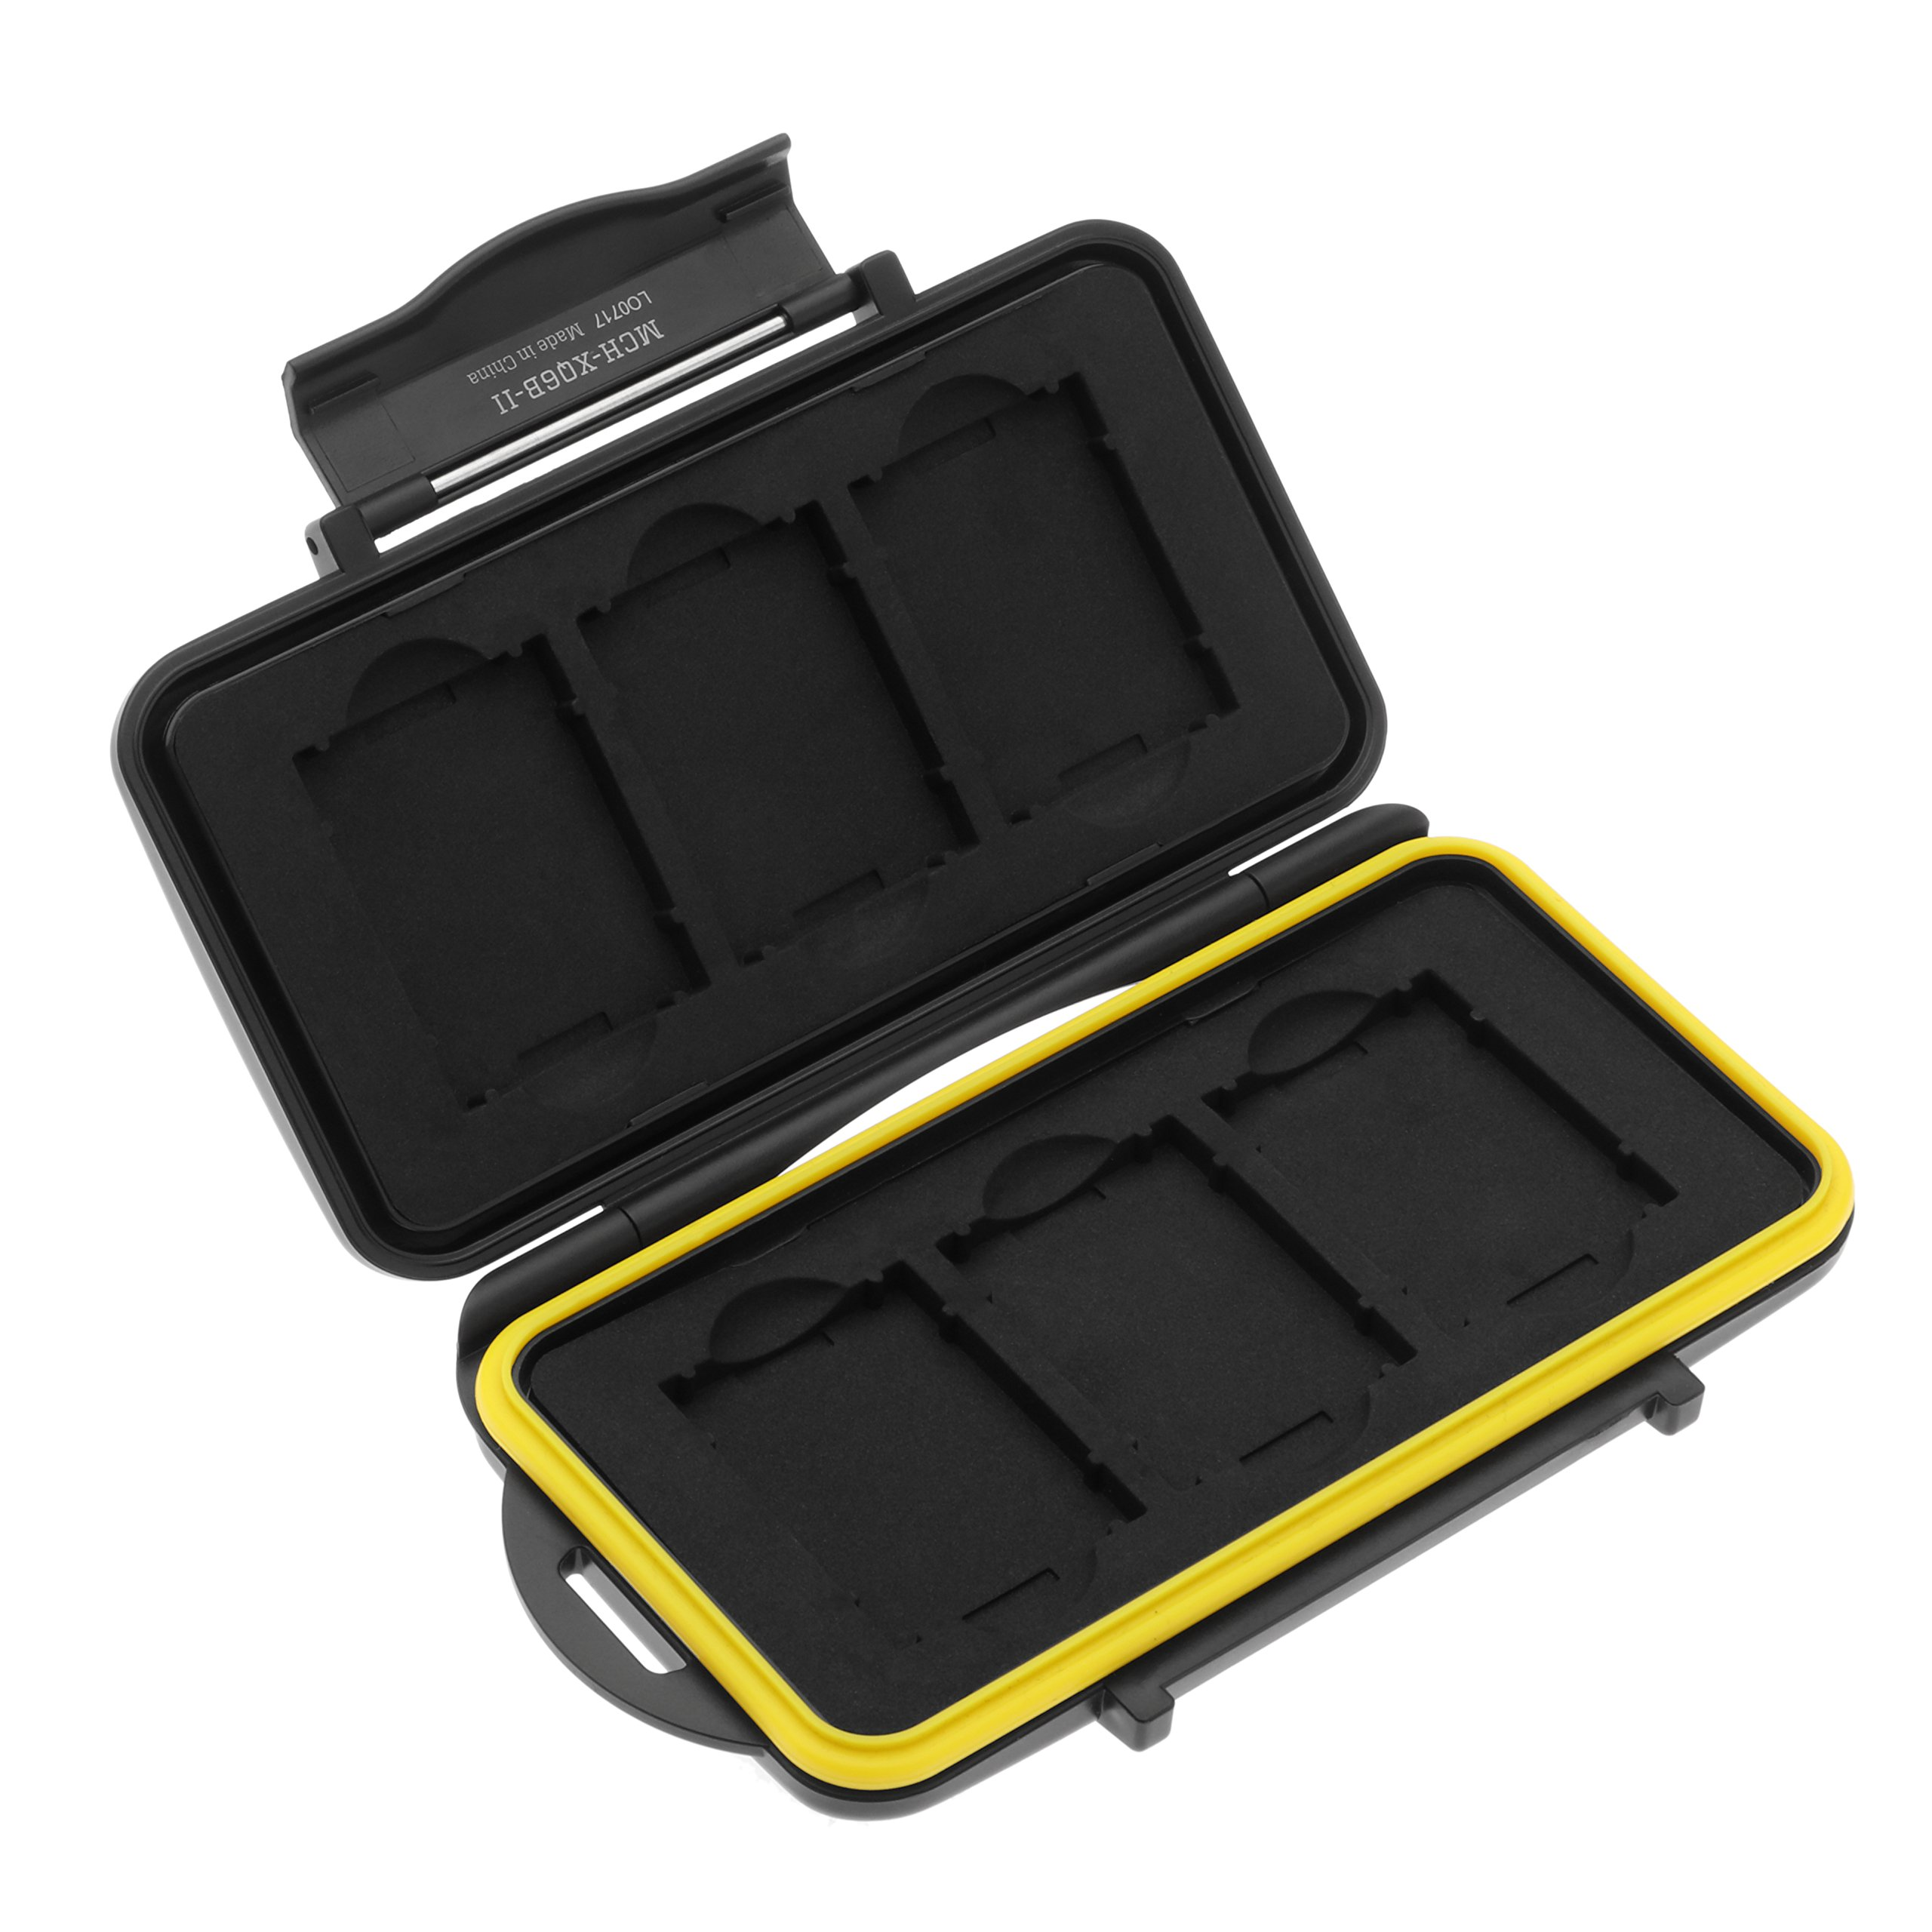 Ruggard Weather-Resistant Memory Card Case Protector from Moisture and Dust - Durable Memory Card Holder and Memory Card Organizer for 6 XQD Cards, MCH-XQ6B-II Model (Black)